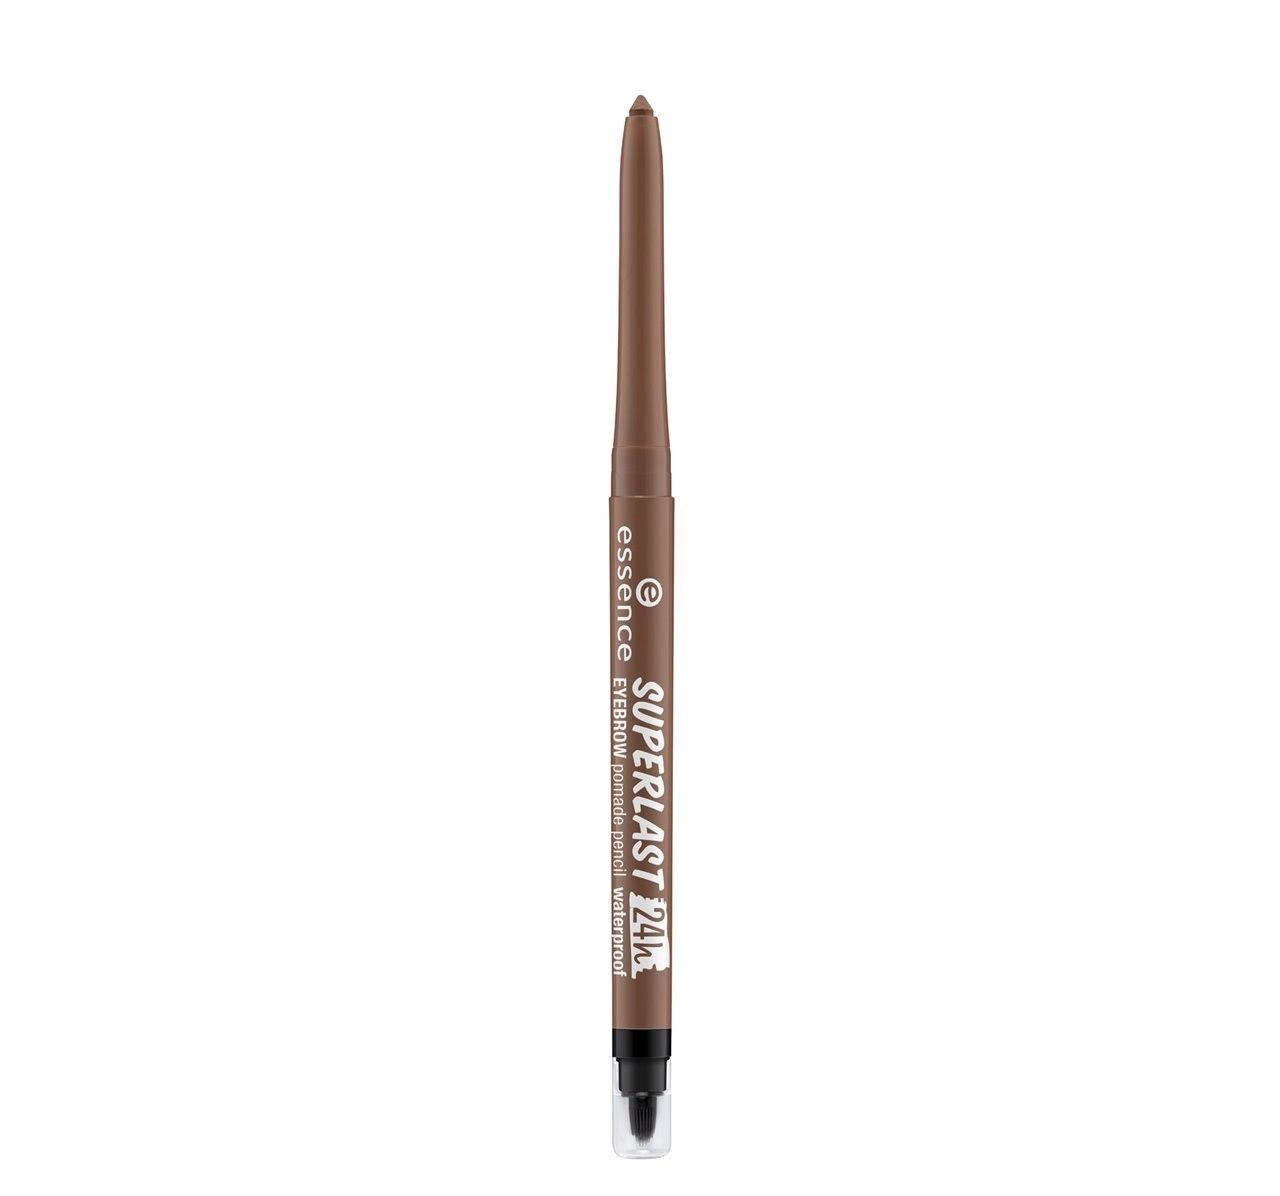 Essence superl.24h eyebrow pomade pen.wp 20